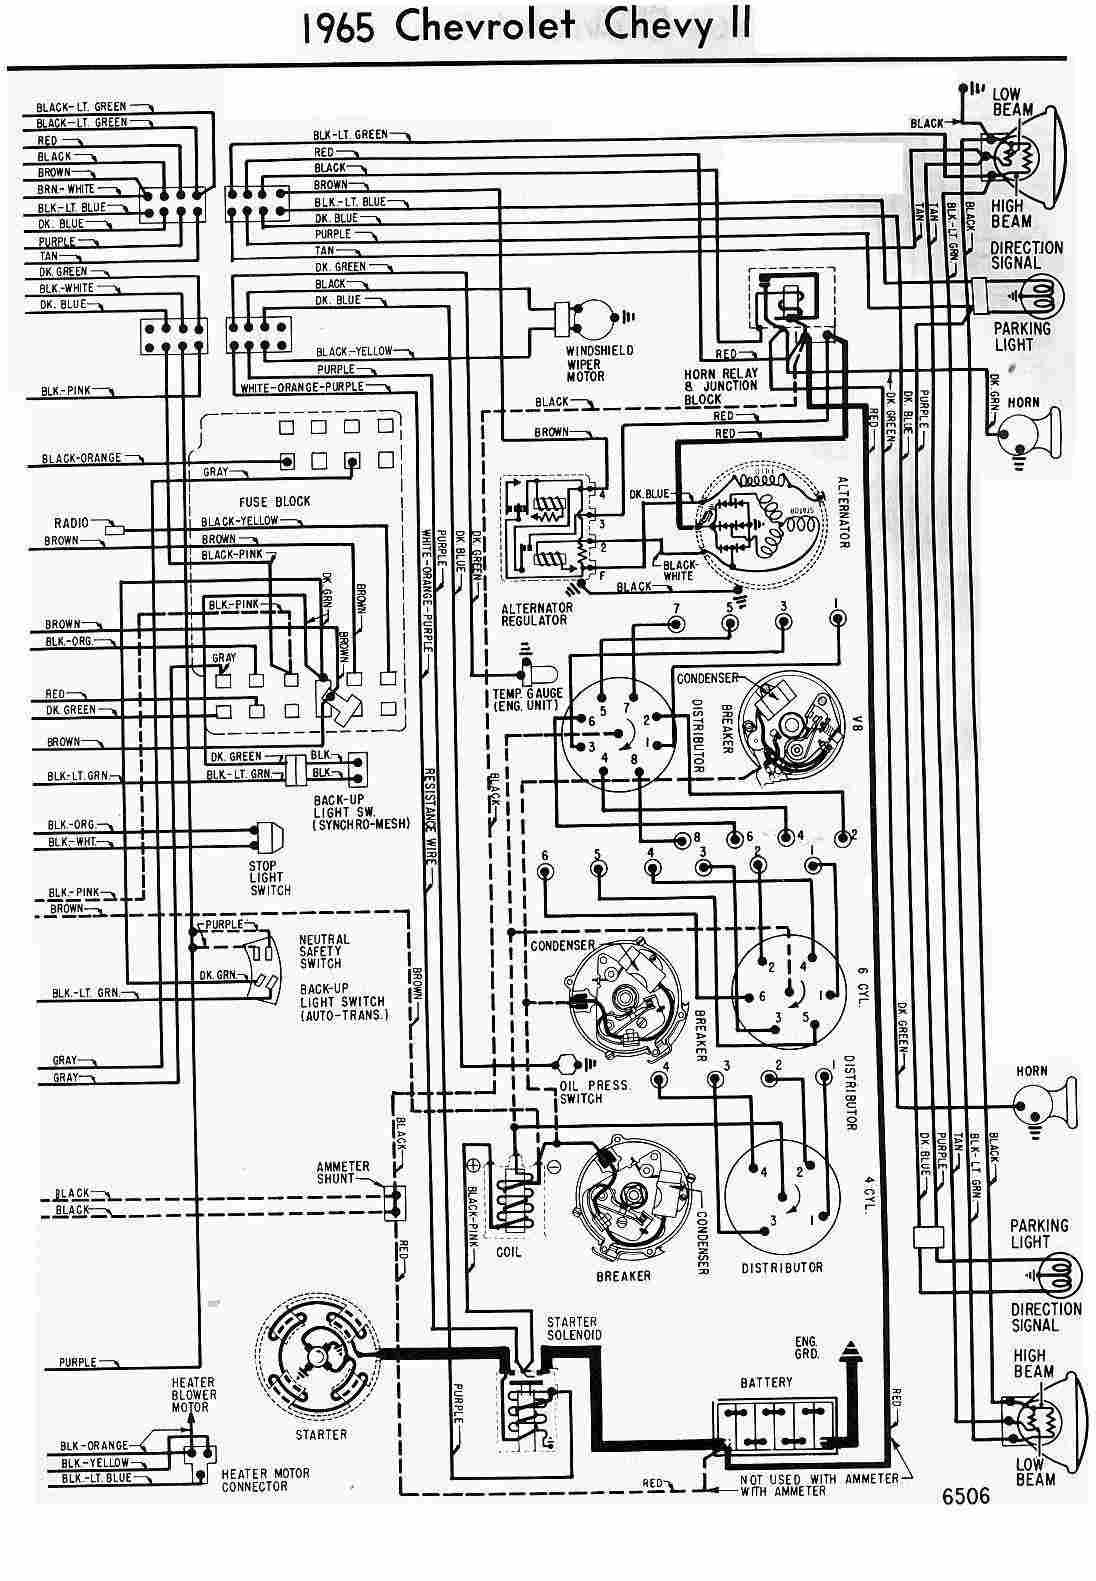 1977 chevy wiring diagram free picture schematic wiring 1959 chevy truck ignition switch wiring diagram 1959 chevrolet